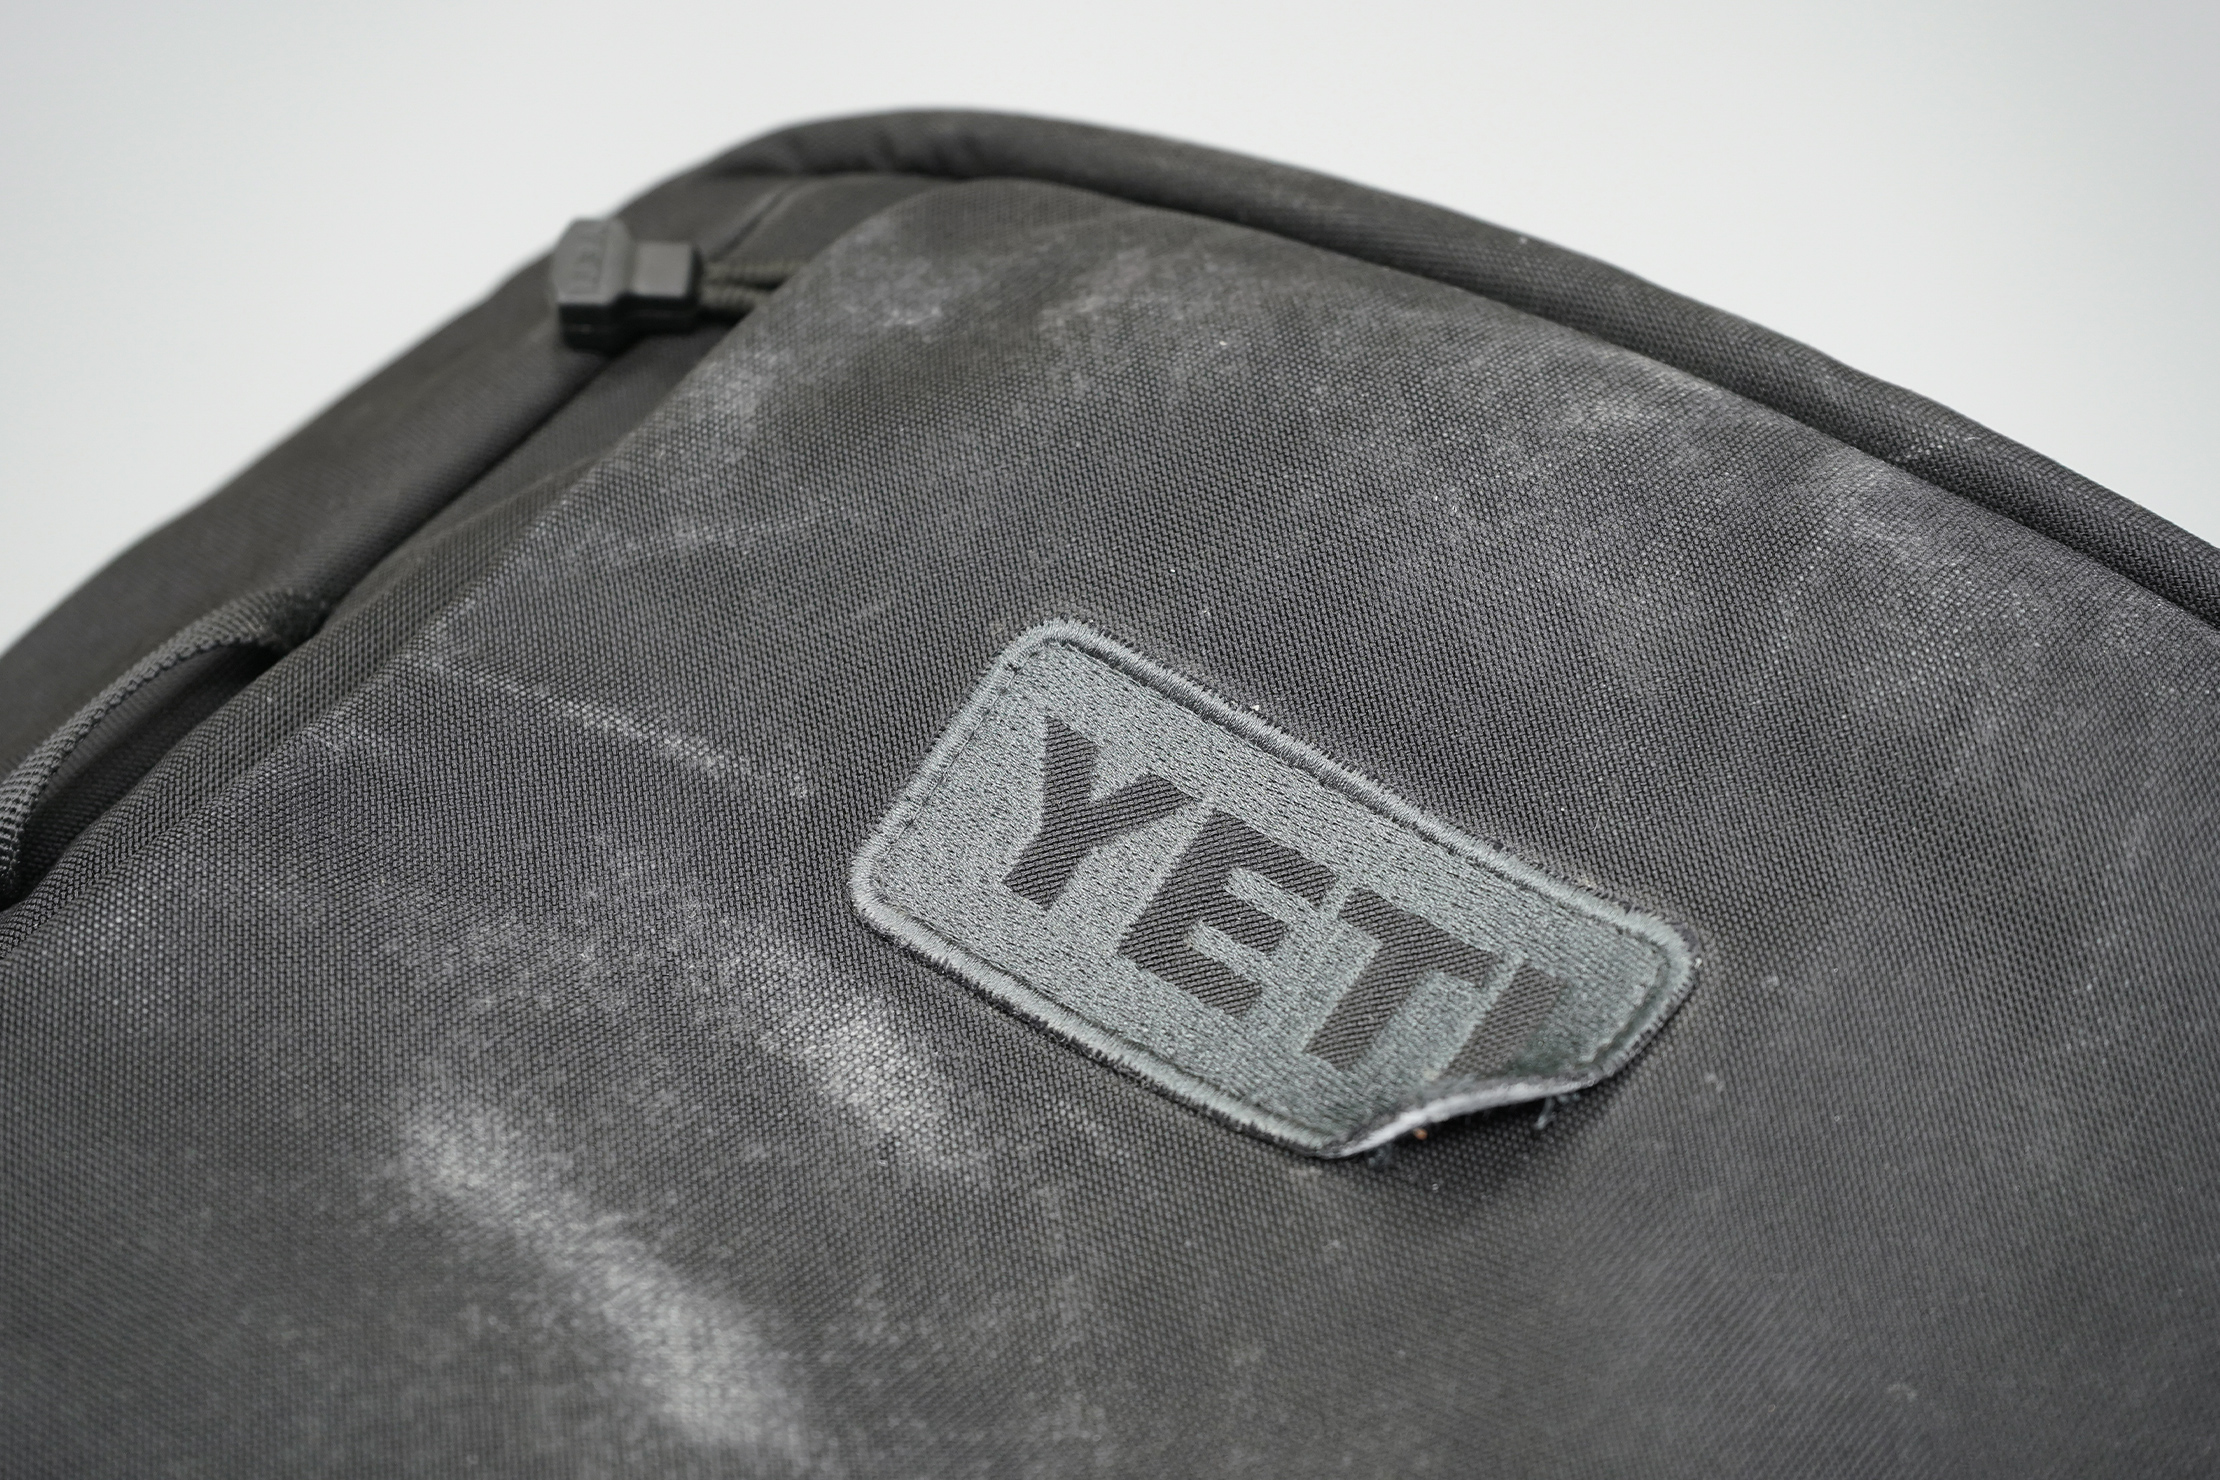 YETI Crossroads 35L Backpack | The logo has started to peel at the corner.